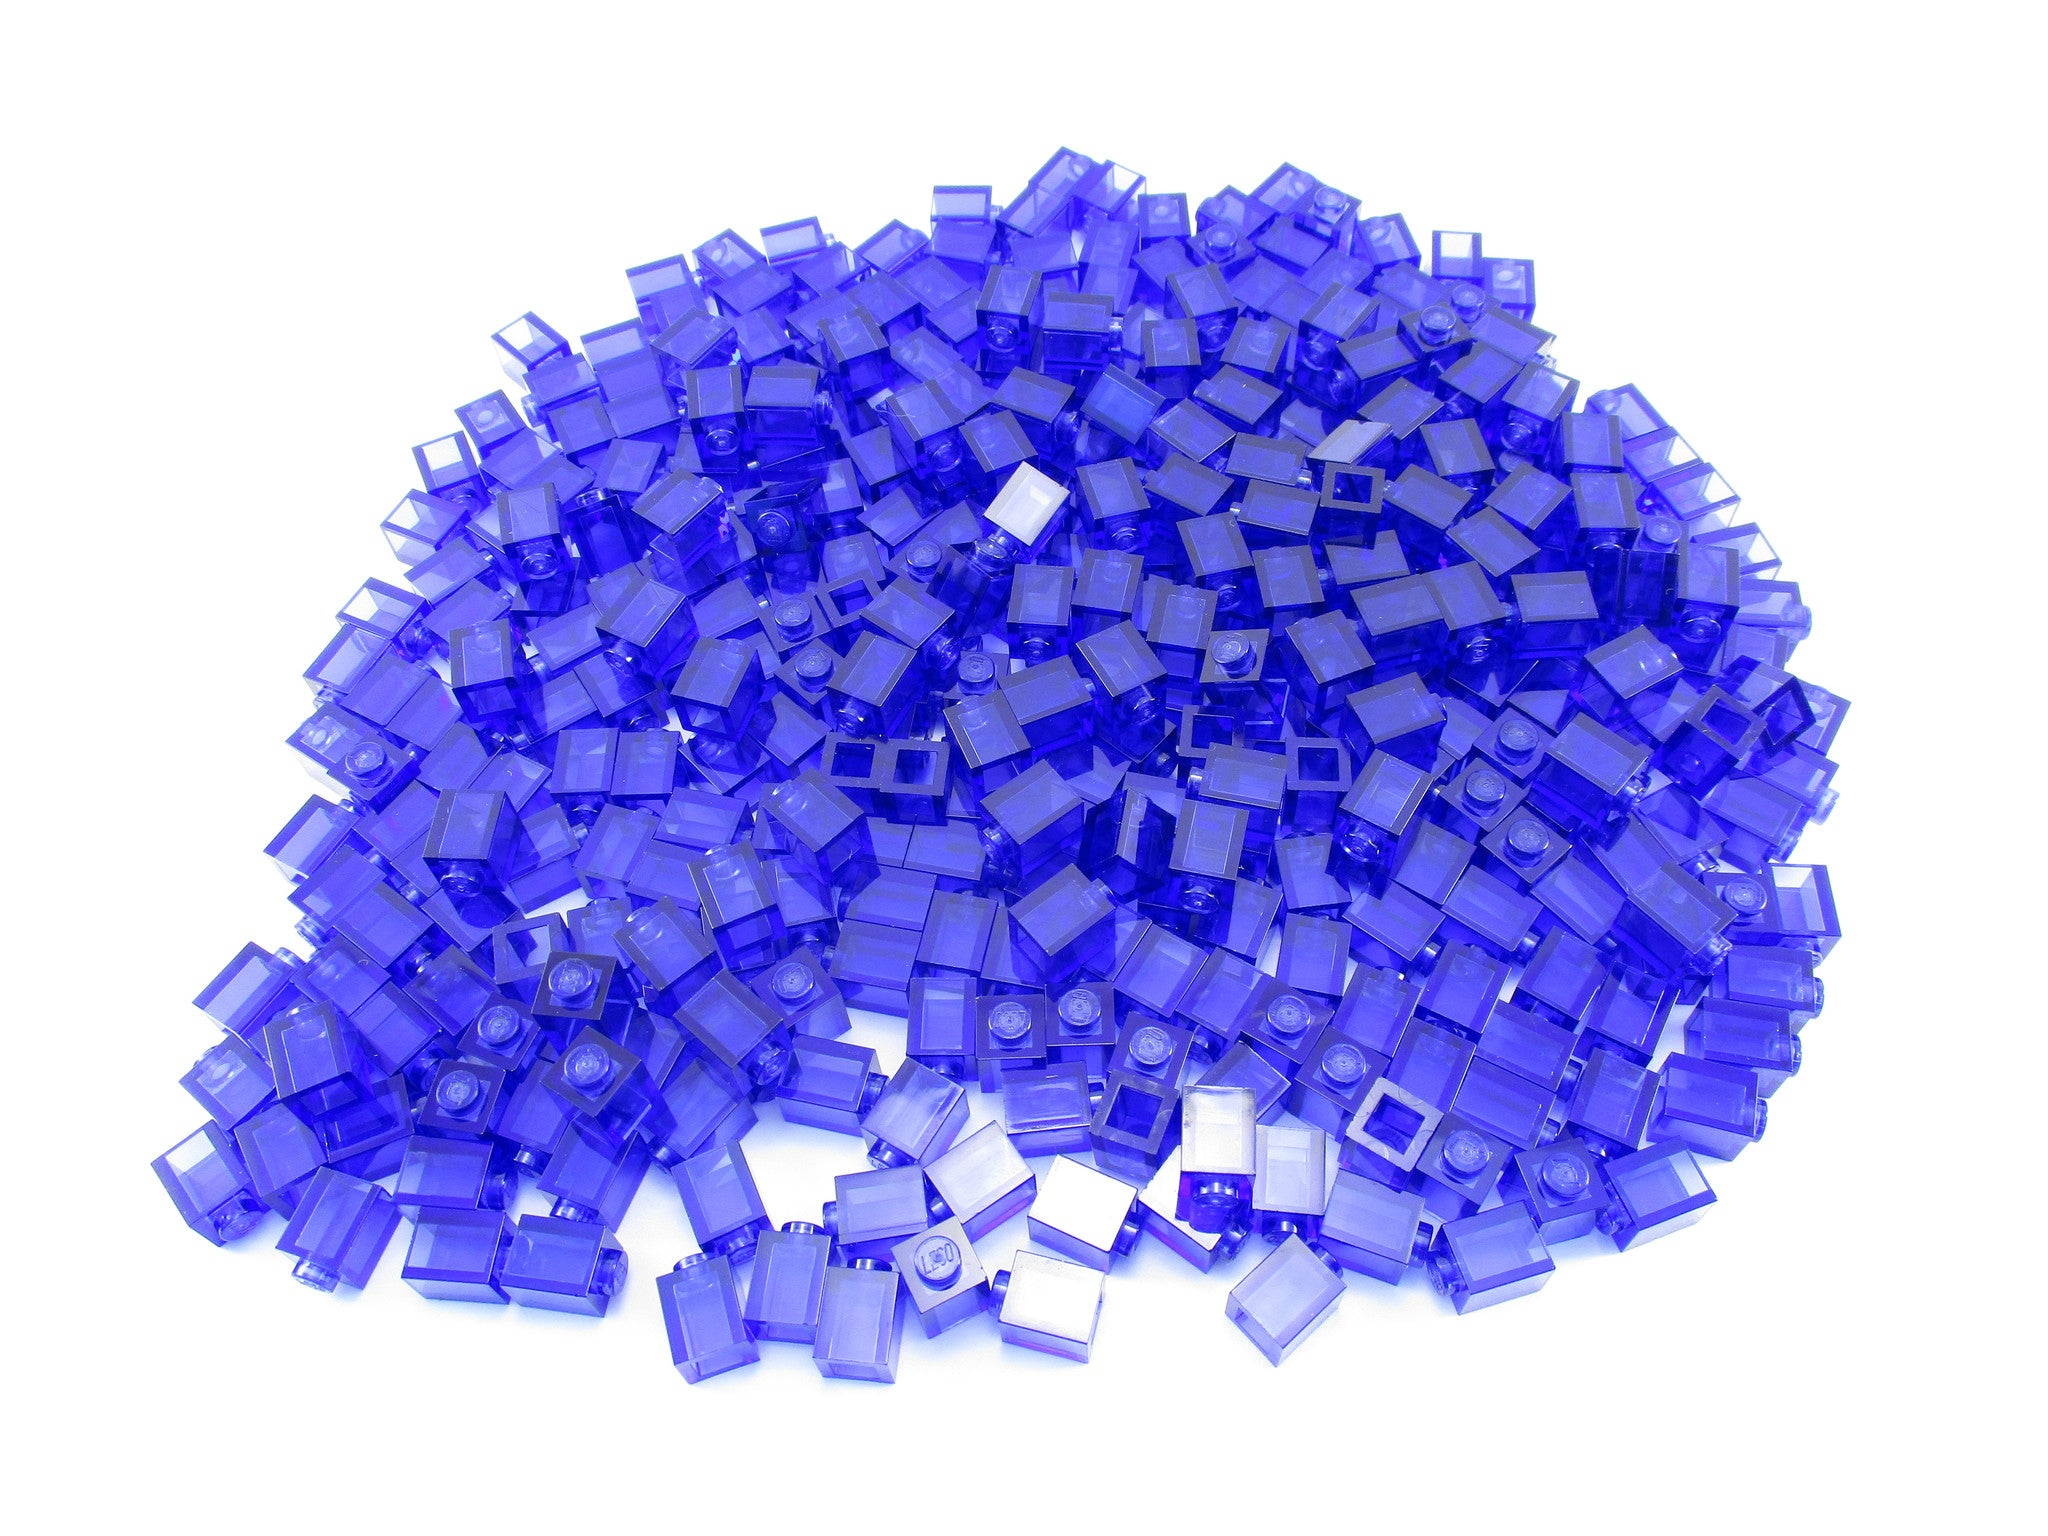 LEGO Trans Purple Brick 1x1 Lot of 100 Parts Pieces 3005